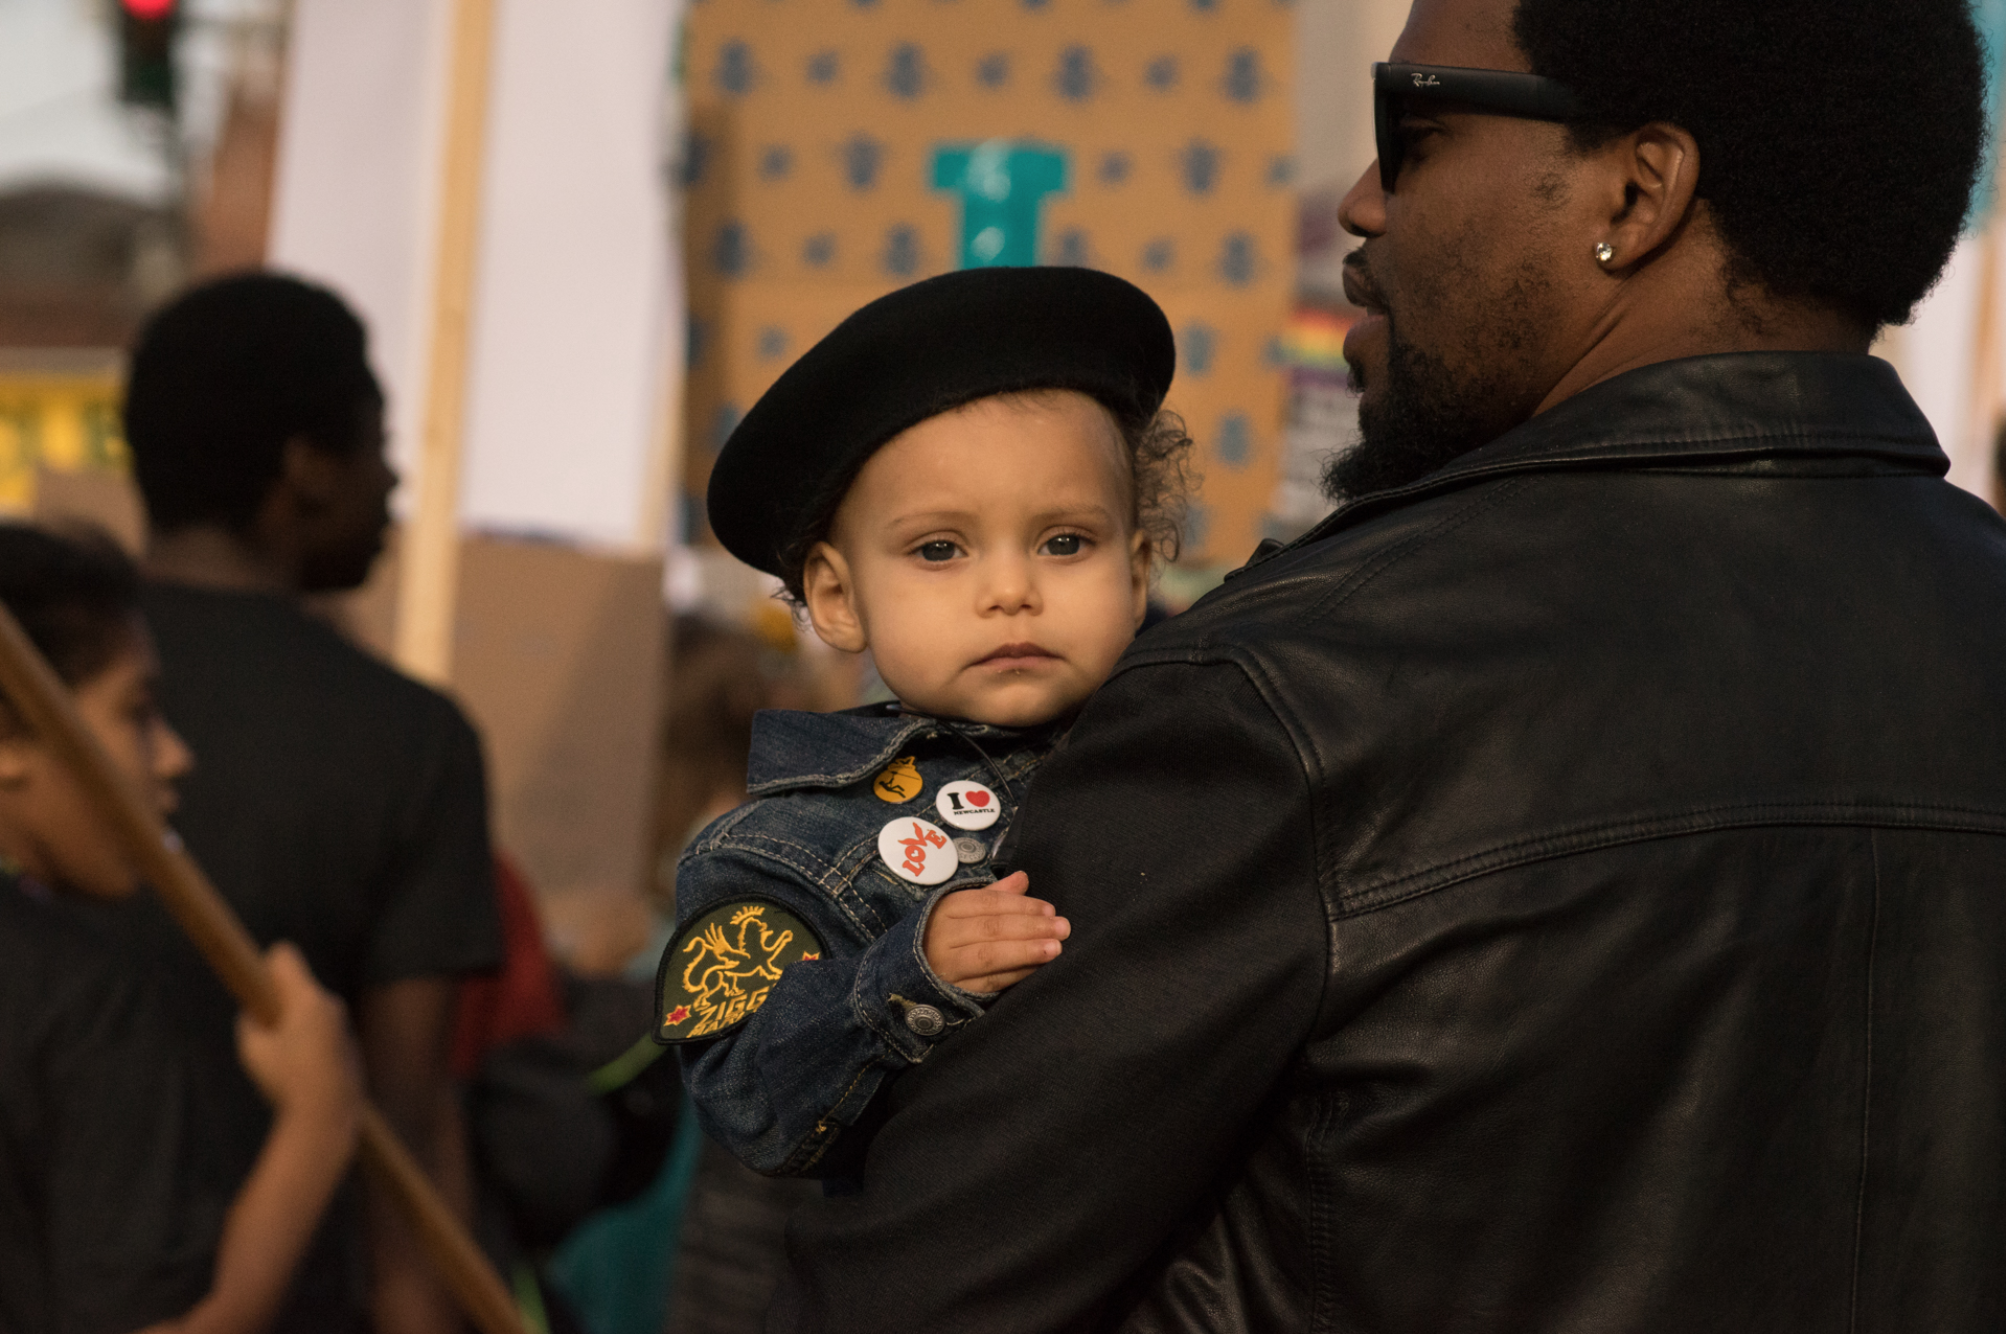 A young child attends her first MLK march in Seattle 2018